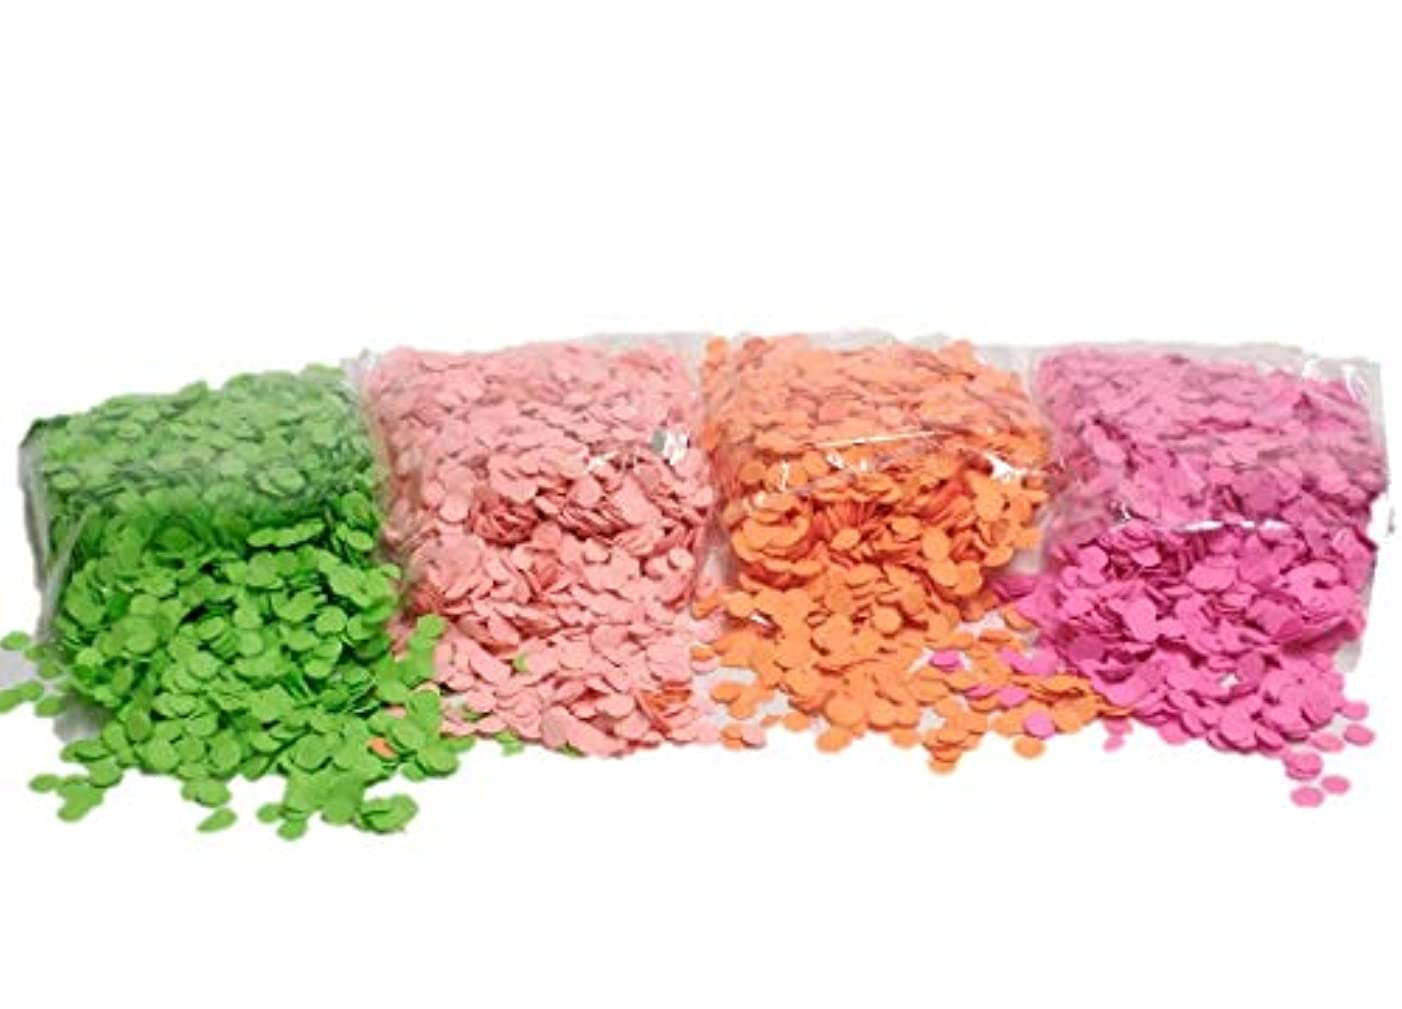 PartyParty Neon Confetti Pack. Red, Pink, Green, and Orange Colors Fluoresce Under UV Black Light